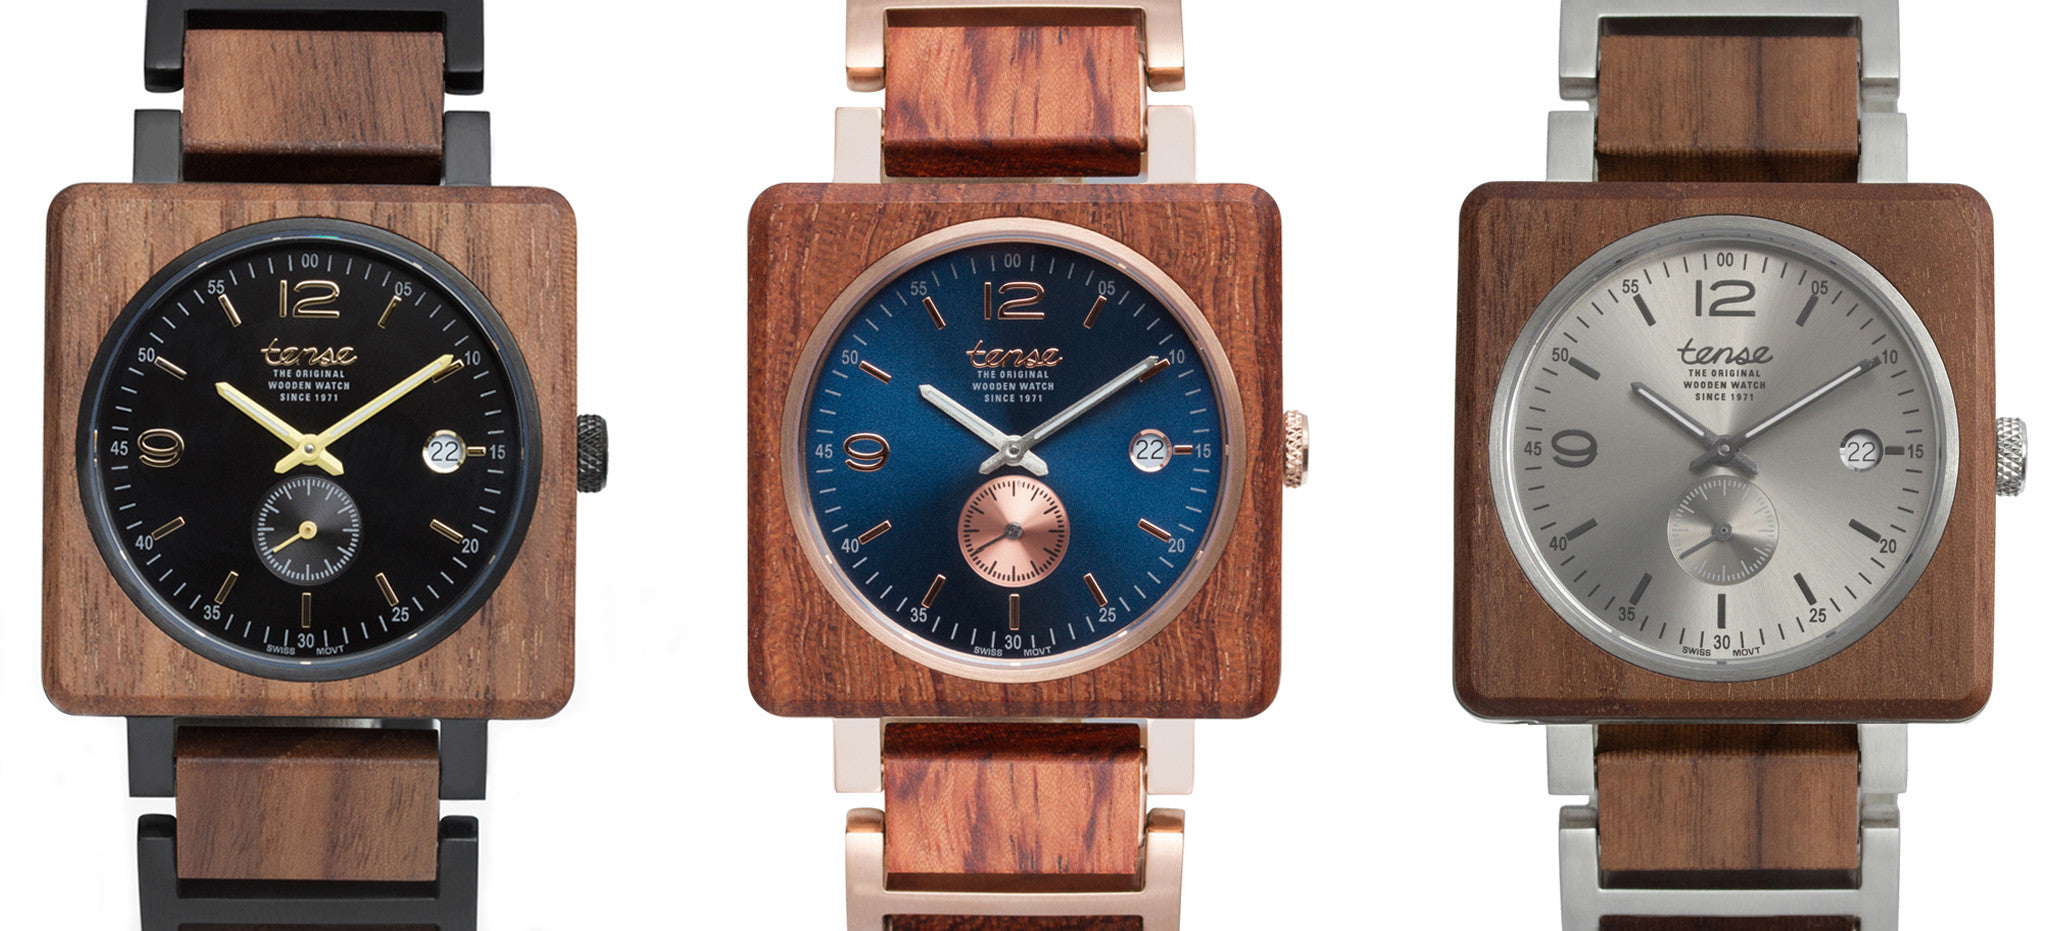 Tense Watches - The Vermont Watch